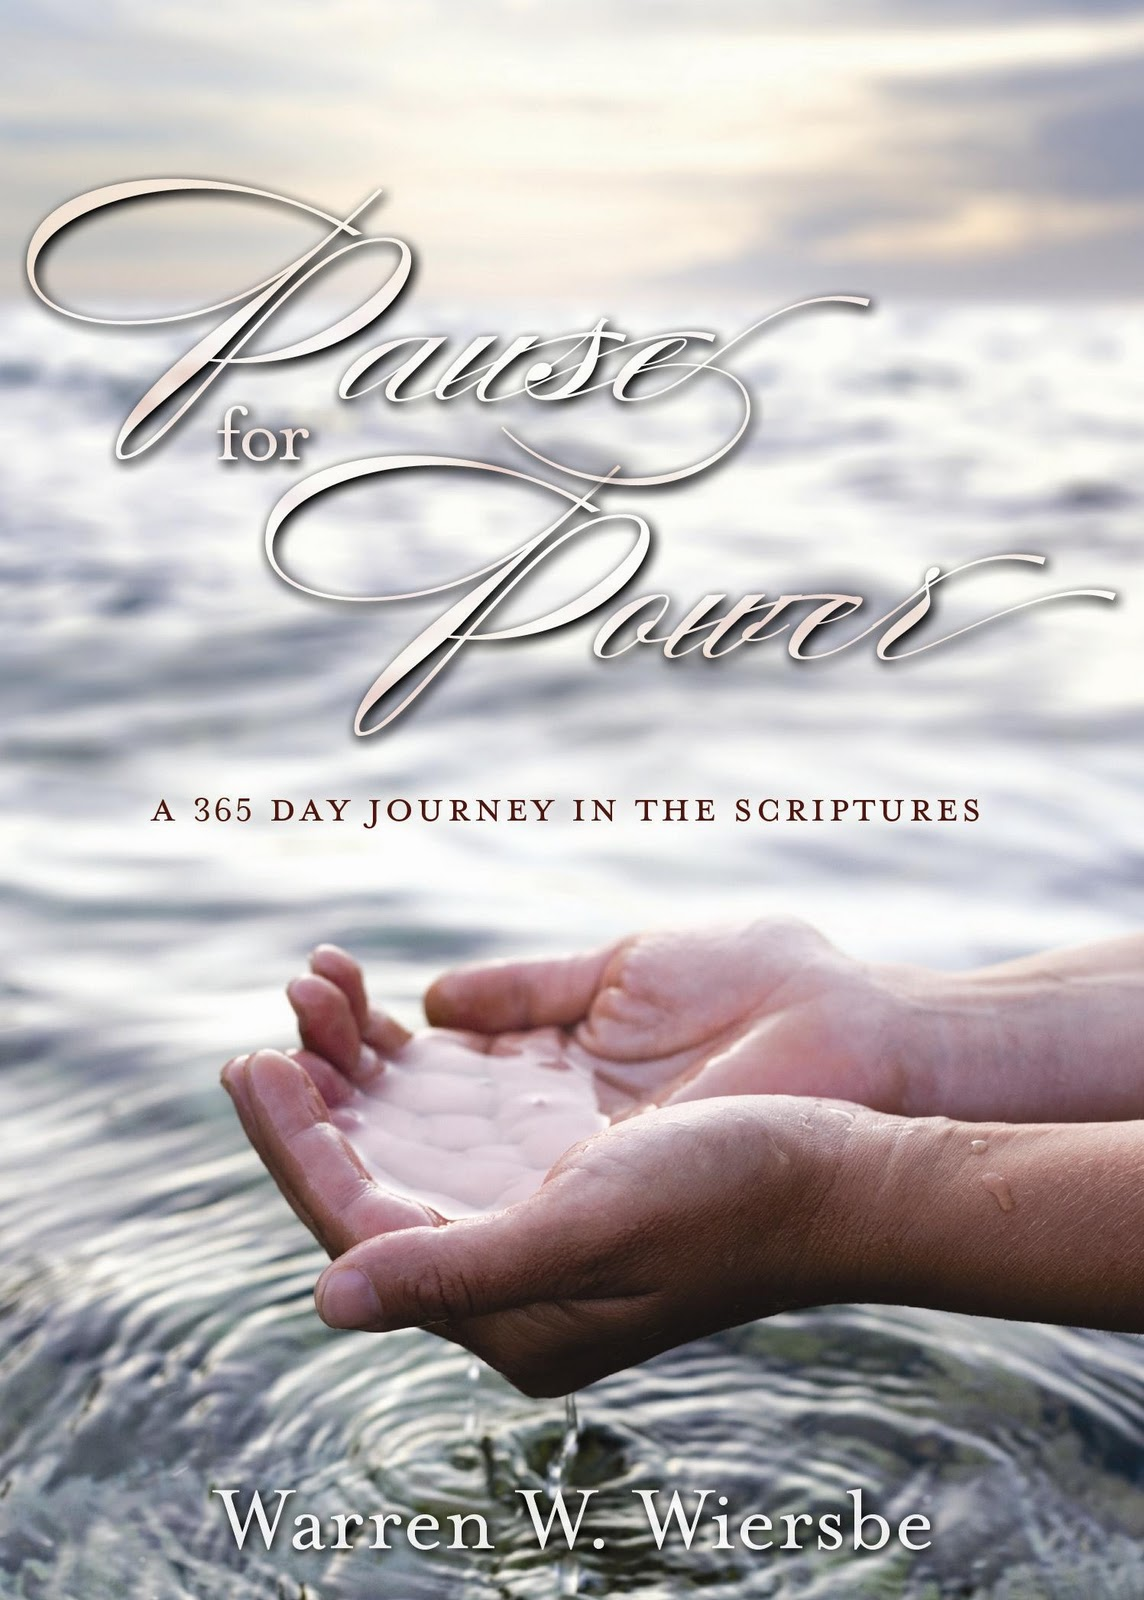 ... Day Themes And Scriptures . Themes And Scriptures For Womens Day. View